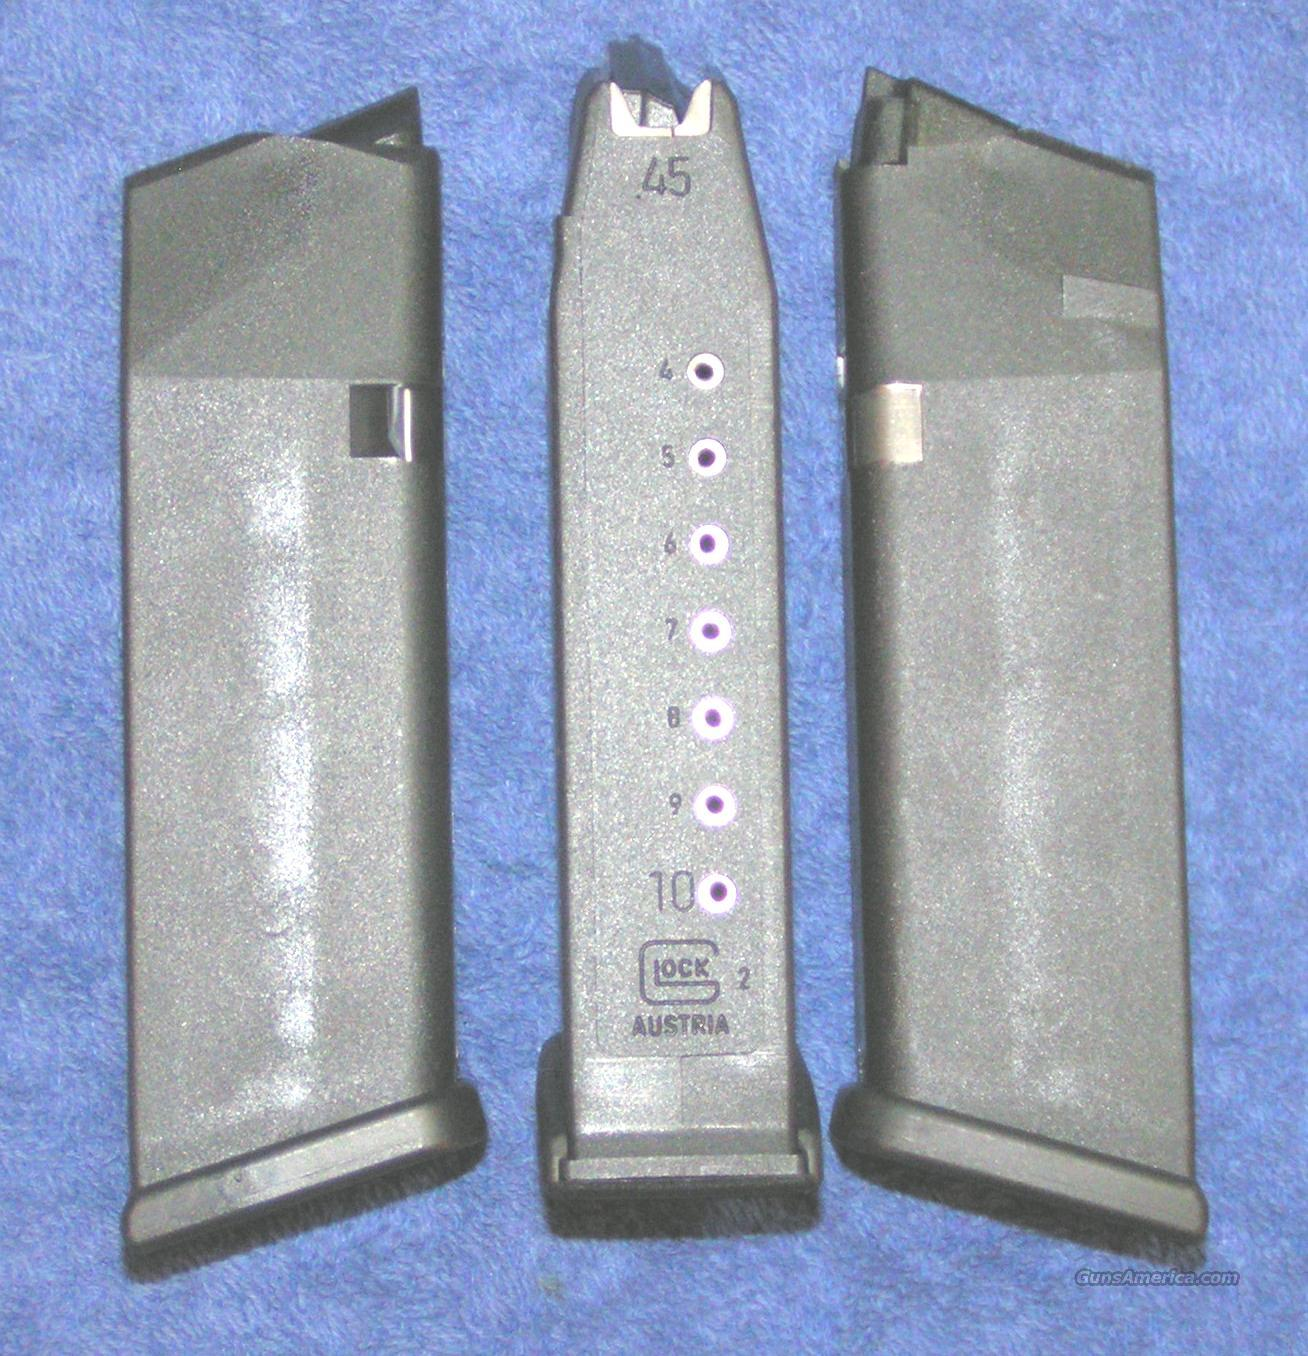 3 Glock 21 mags 10 rd 45ACP factory new 4th Gen.  $25 each  Non-Guns > Magazines & Clips > Pistol Magazines > Glock